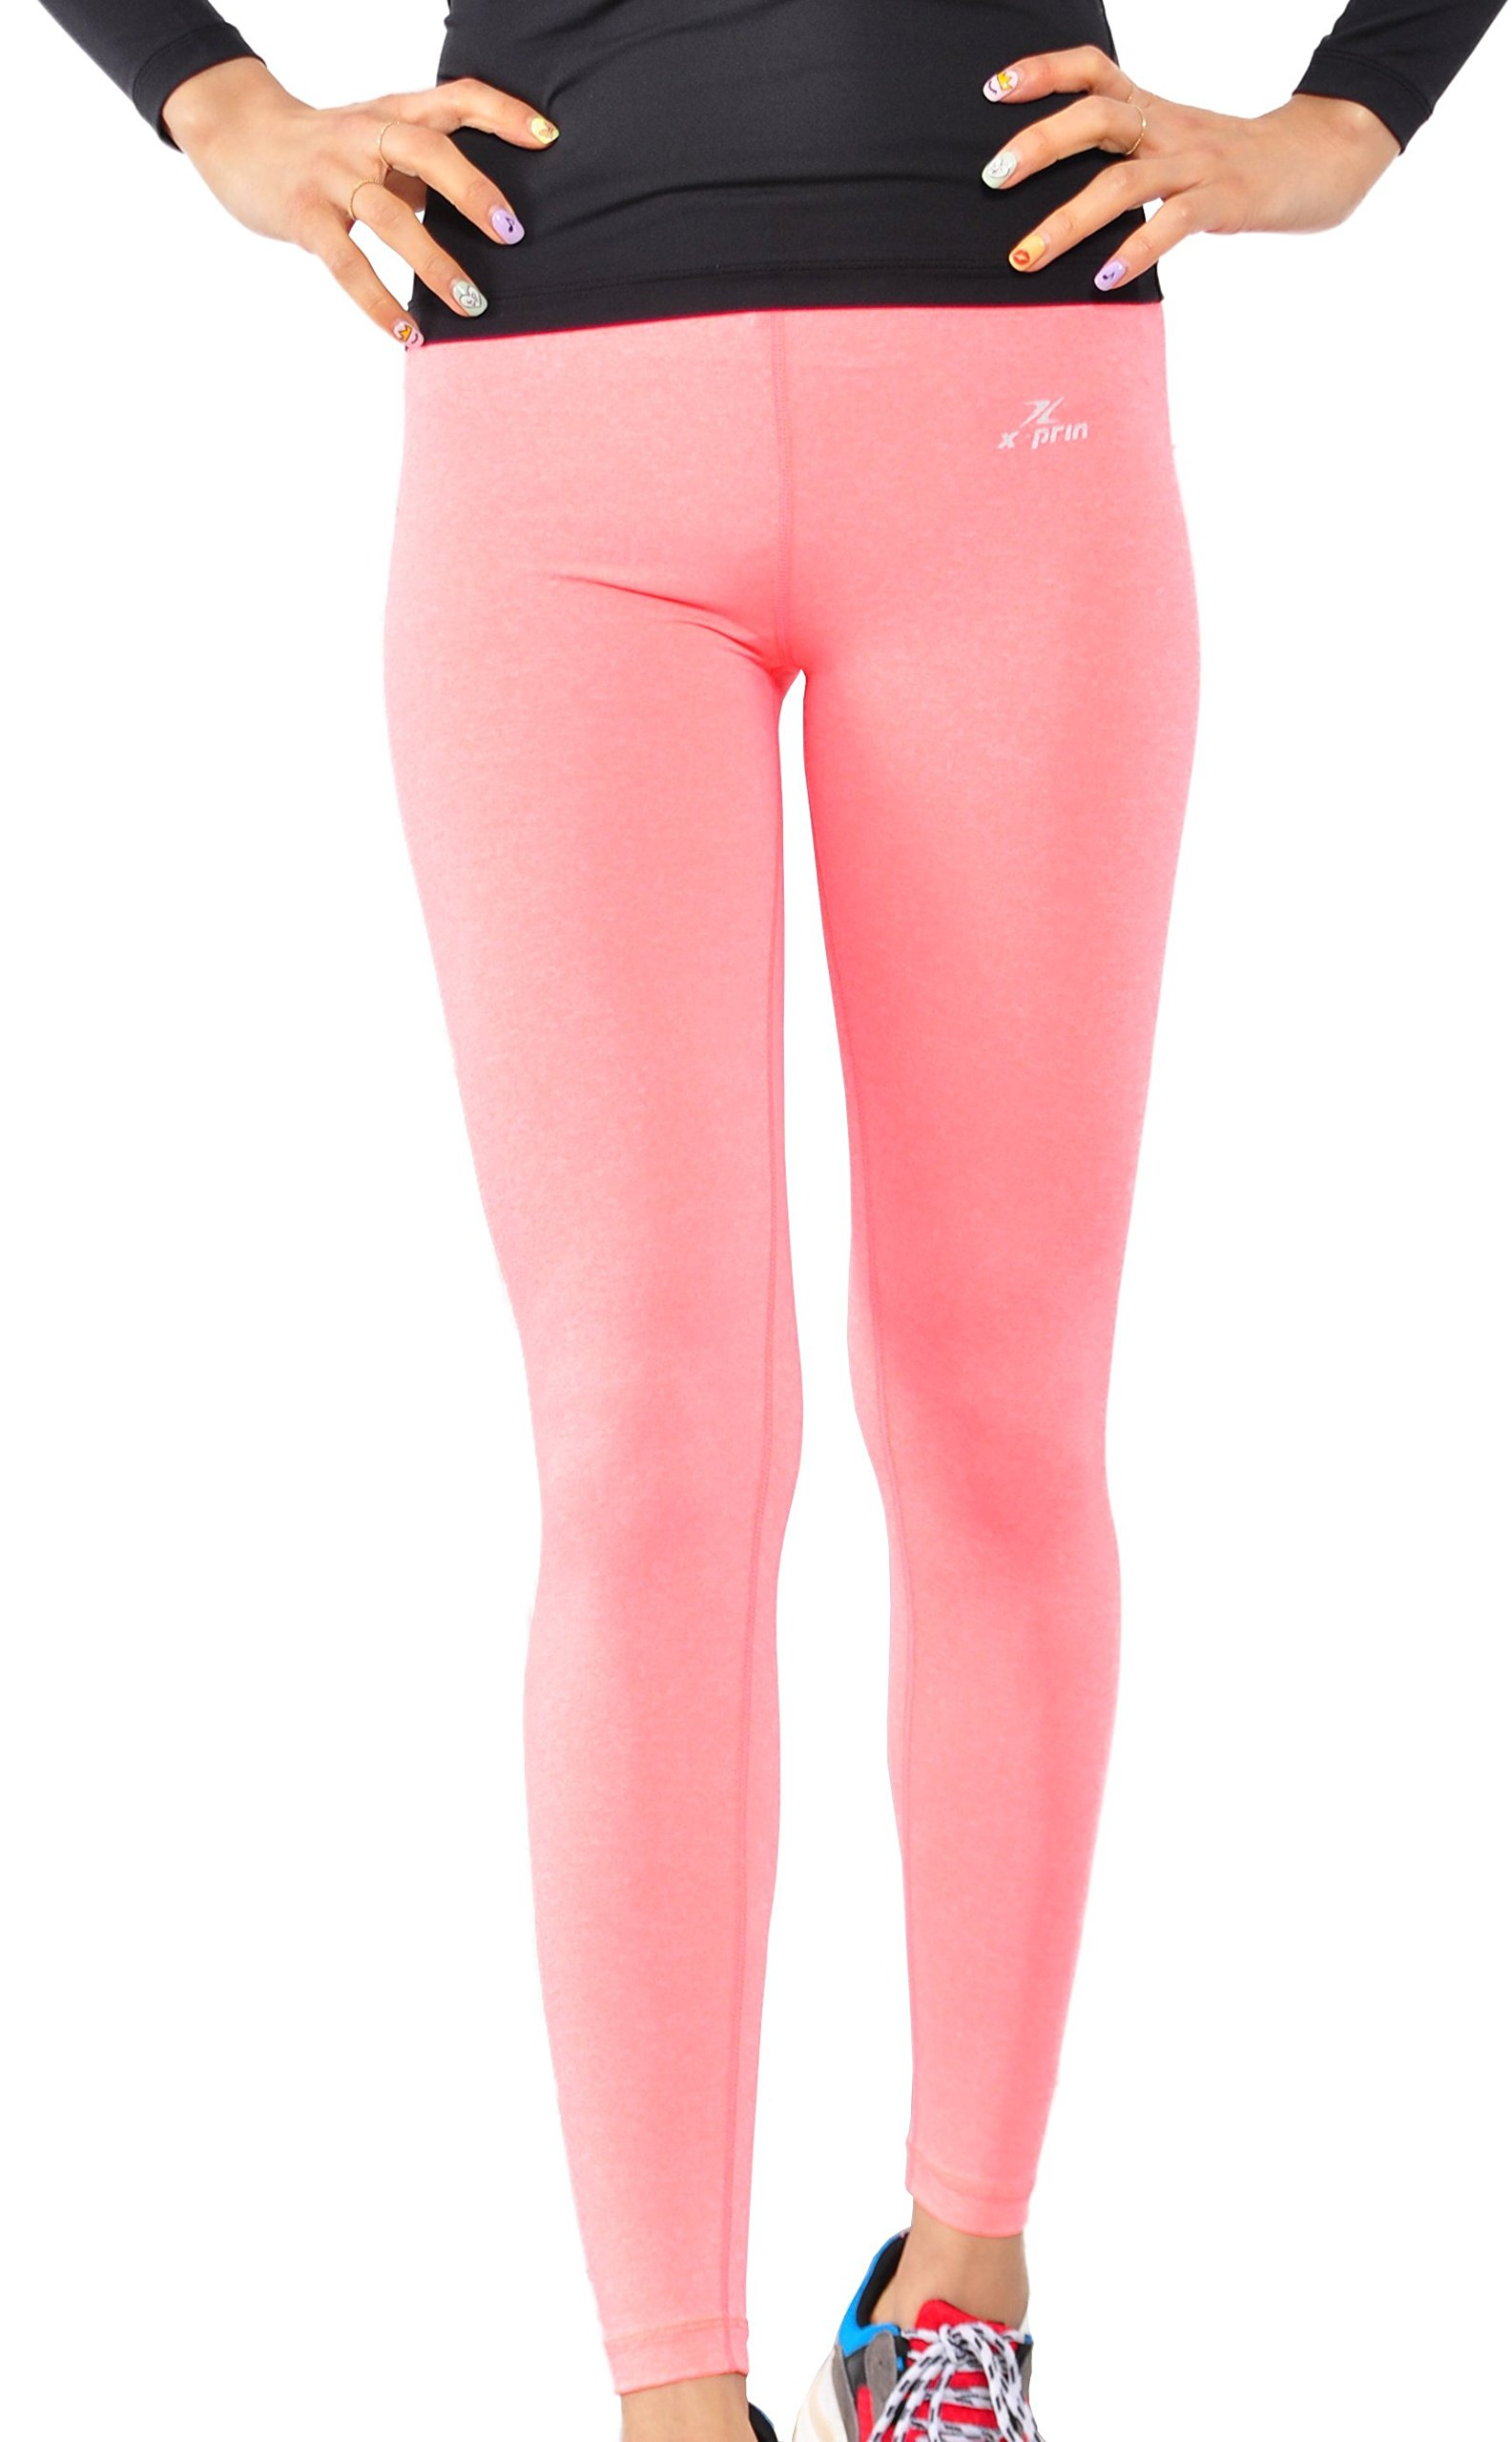 XPRIN A500 Series Womens Long Bottom Pants Base Layer Compression Sports Wear Rash Guard UV 97.5/%